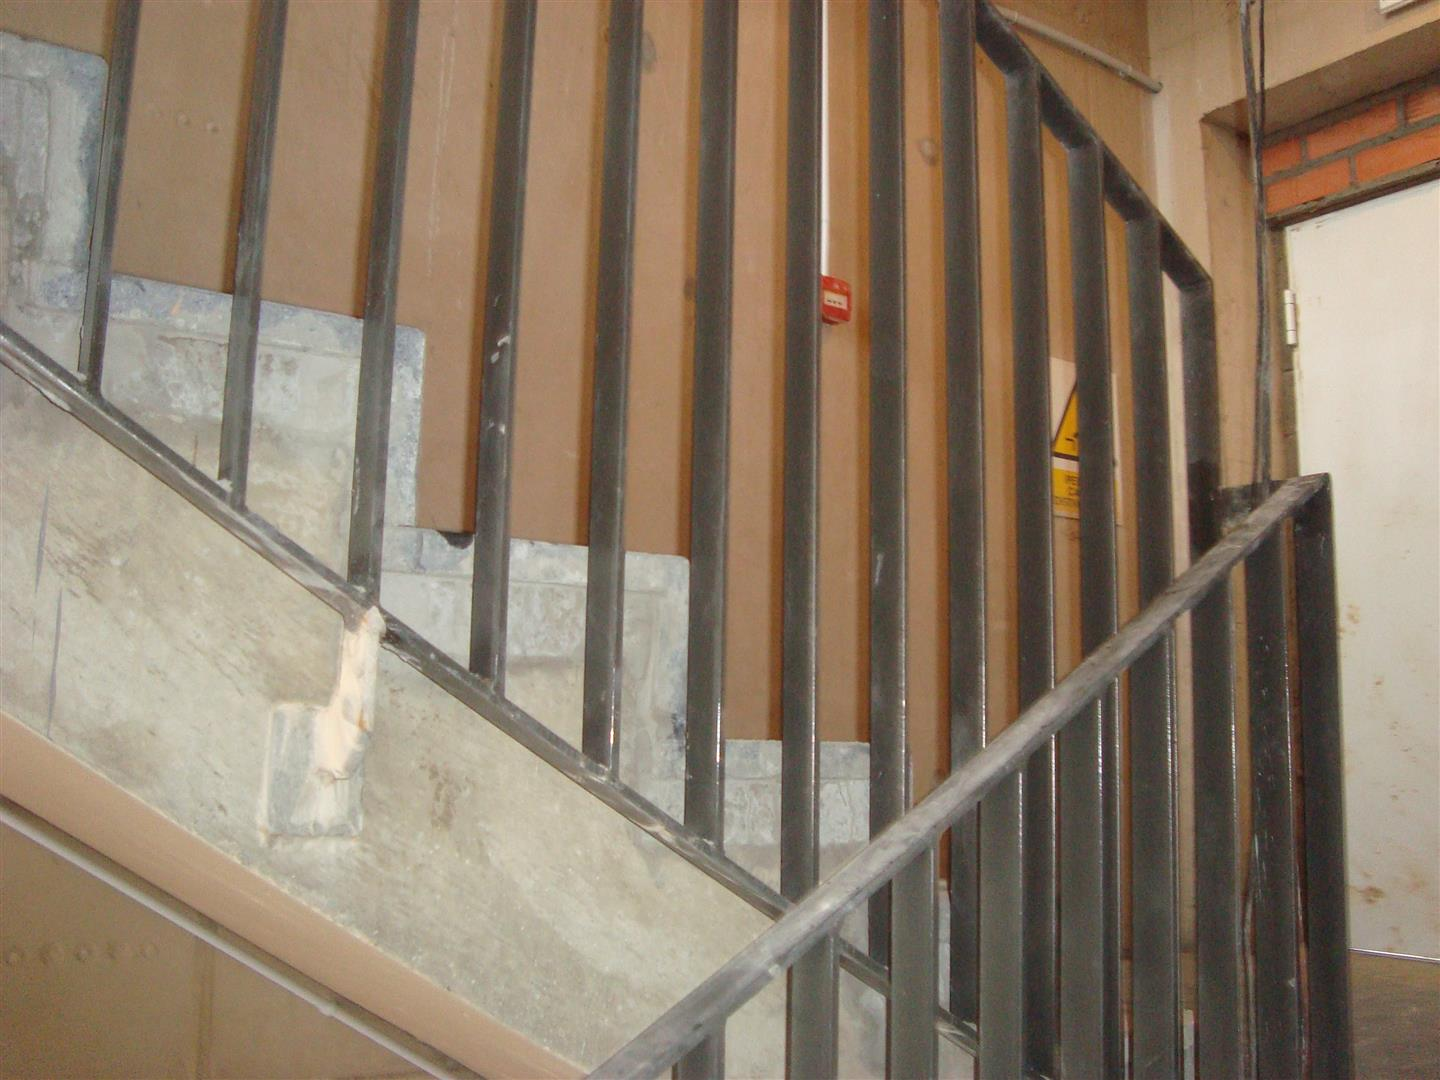 FOTOS AEROPORT 007